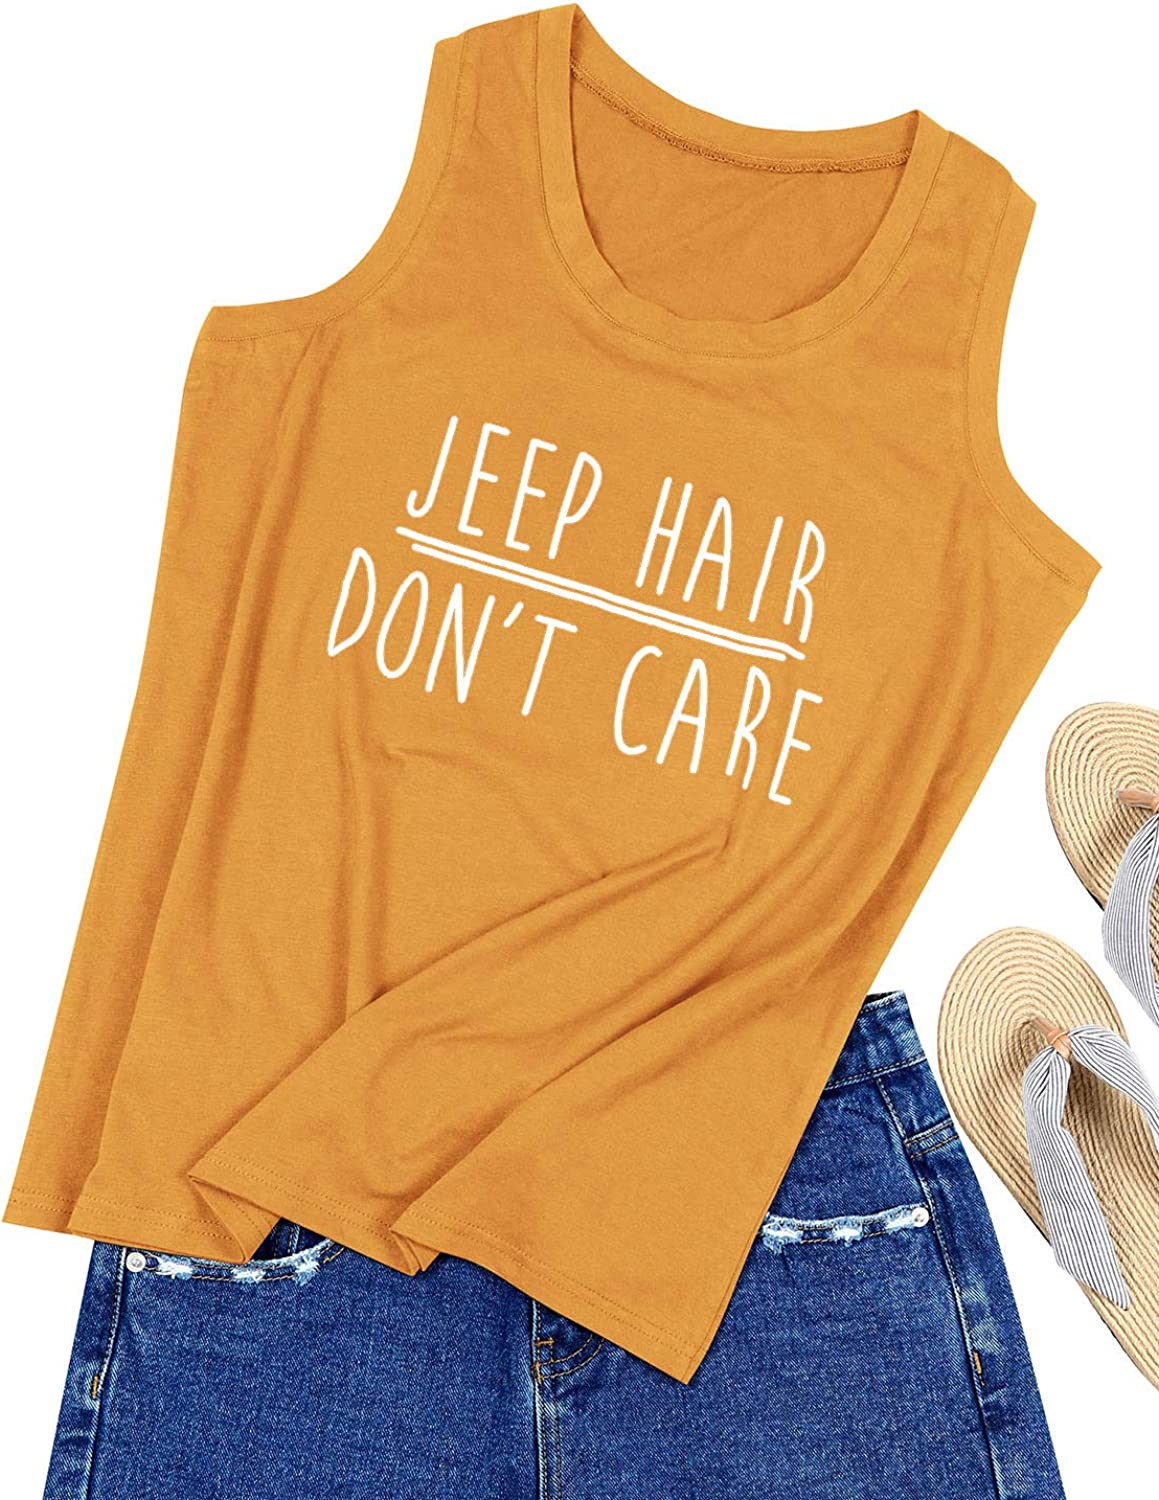 OUNAR Women Jeep Hair Don't Care Tank Top Casual Muscle Tee Graphic Top